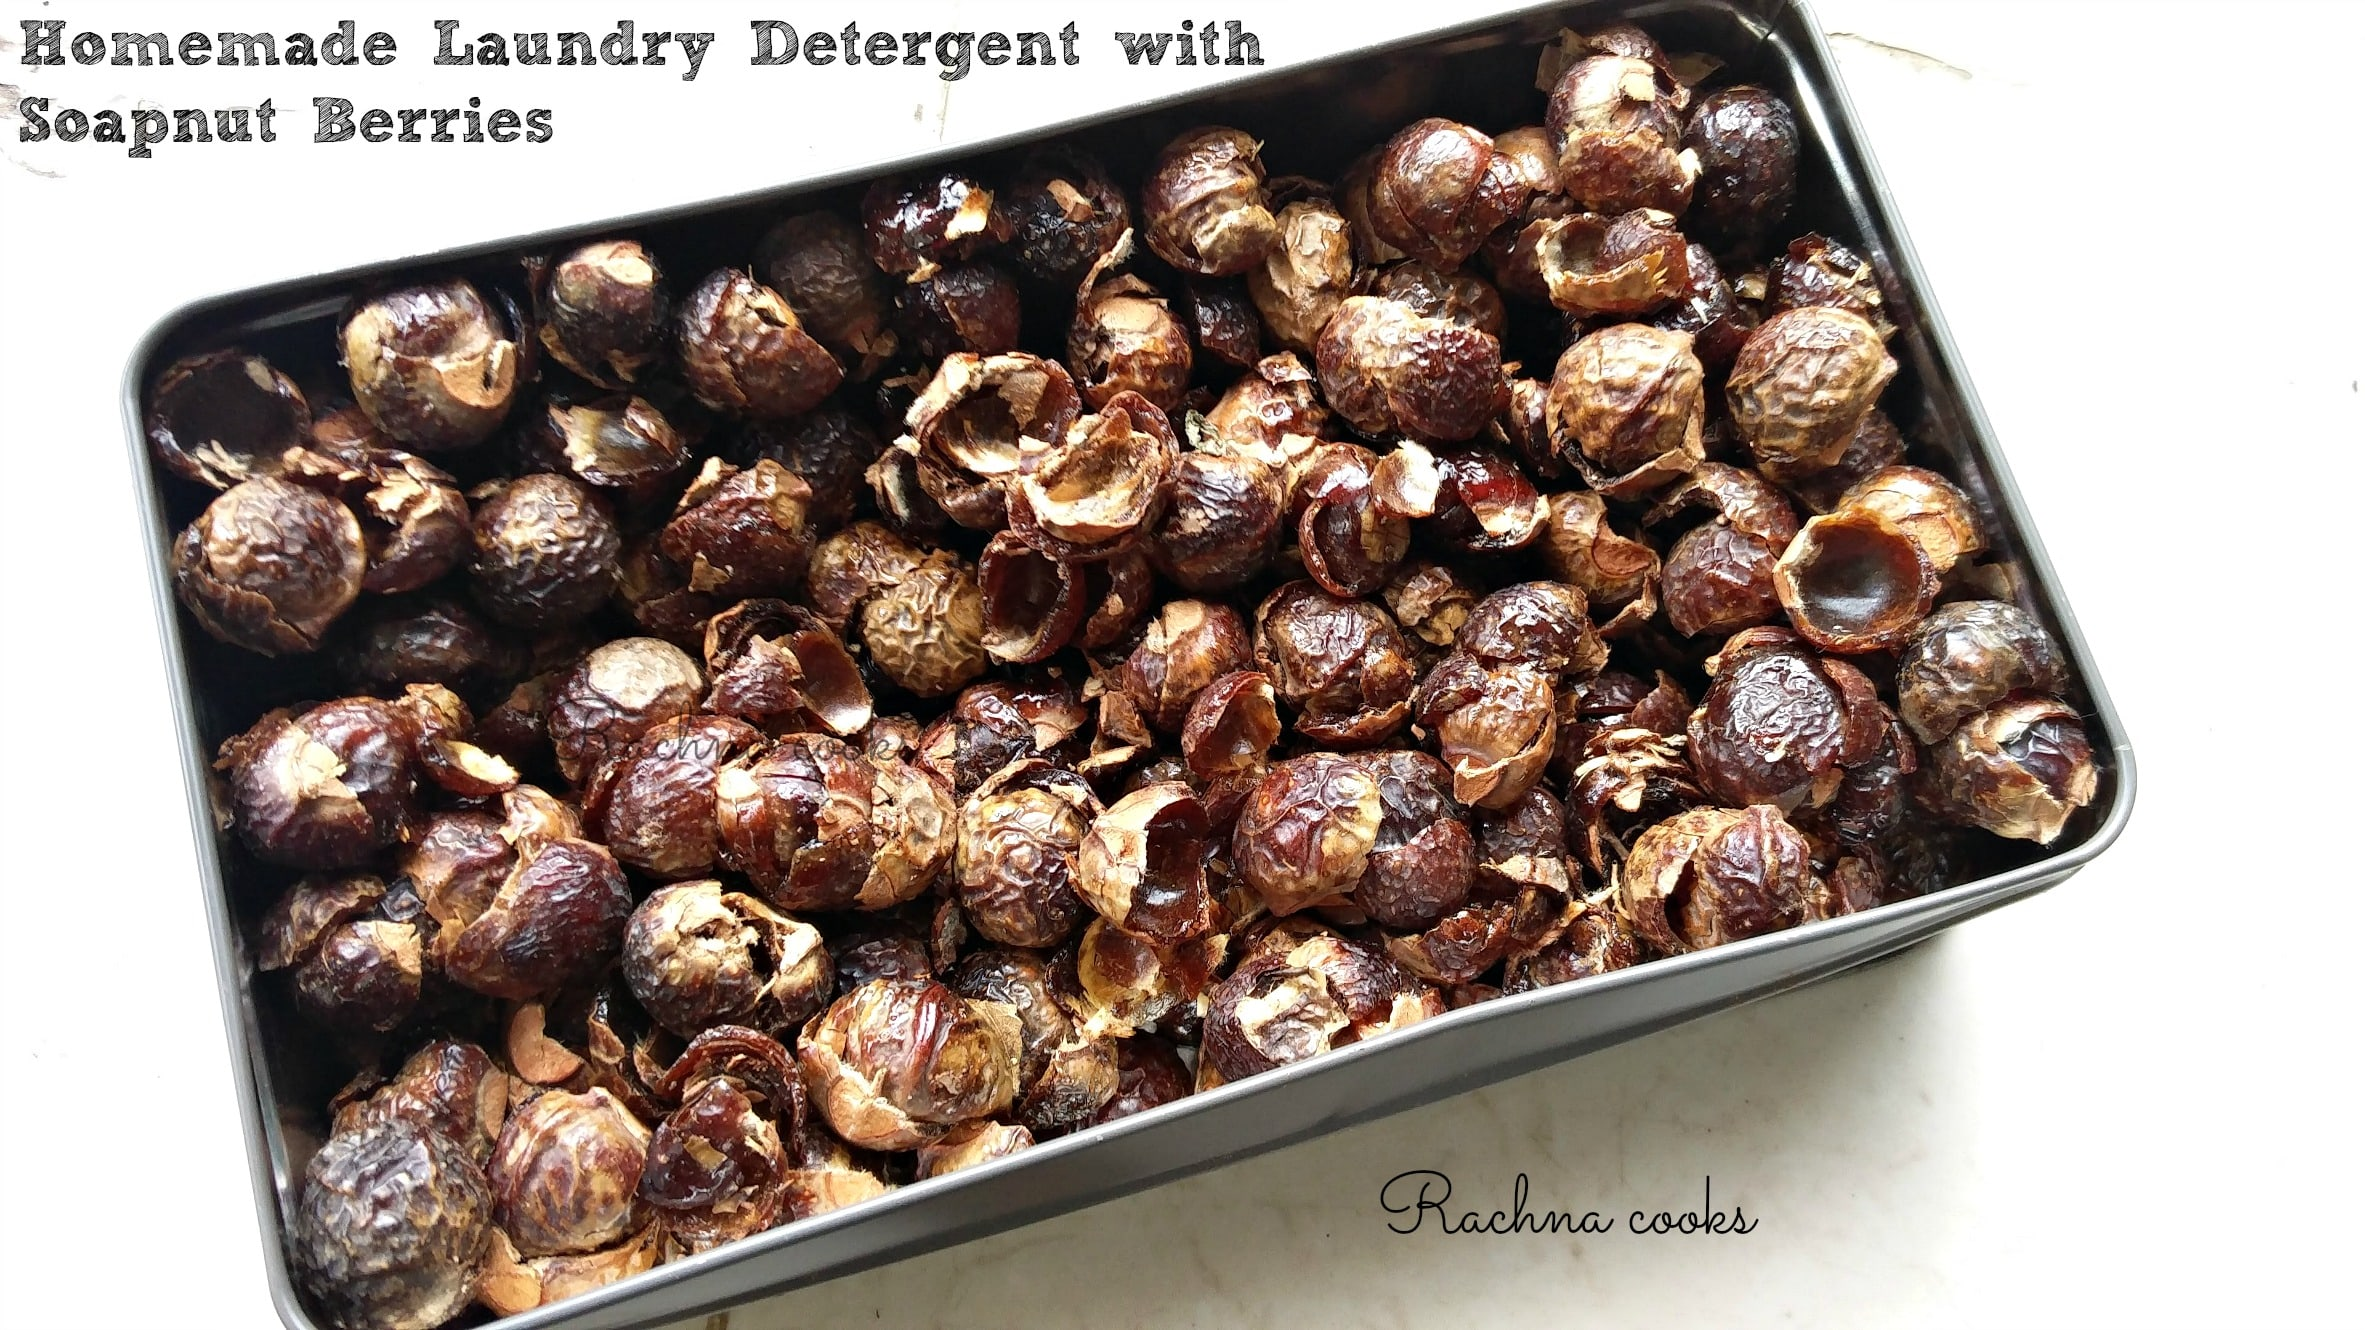 Green and Economical, Easy Homemade Laundry Detergent with Soapnuts